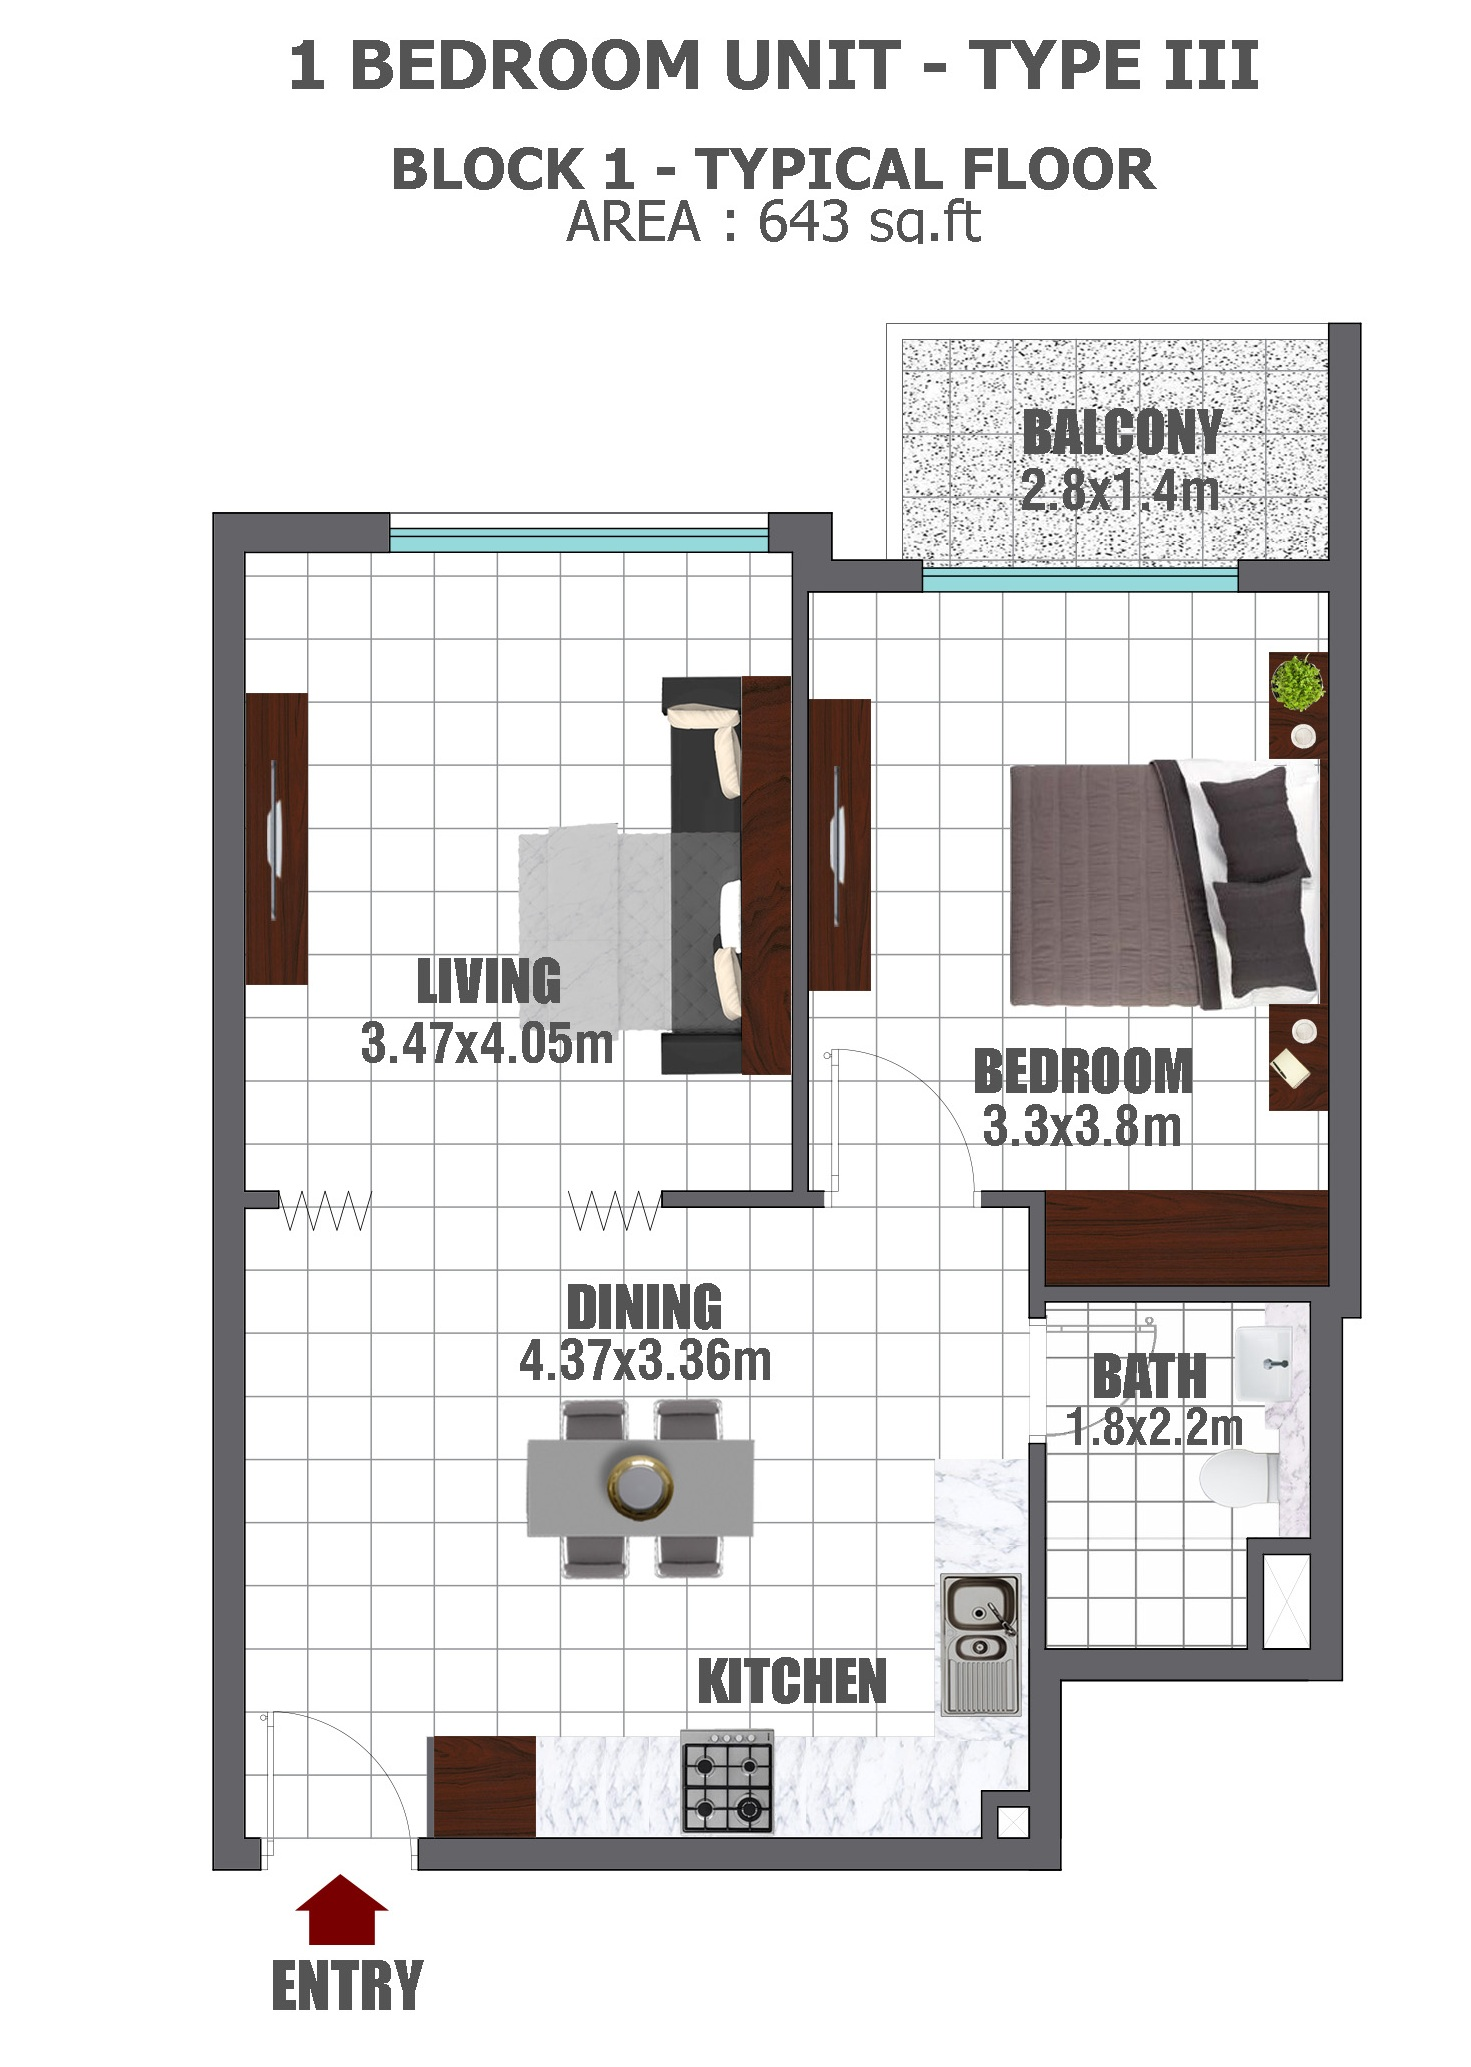 Planning of the apartment 1BR, 643 in Lawnz, Dubai